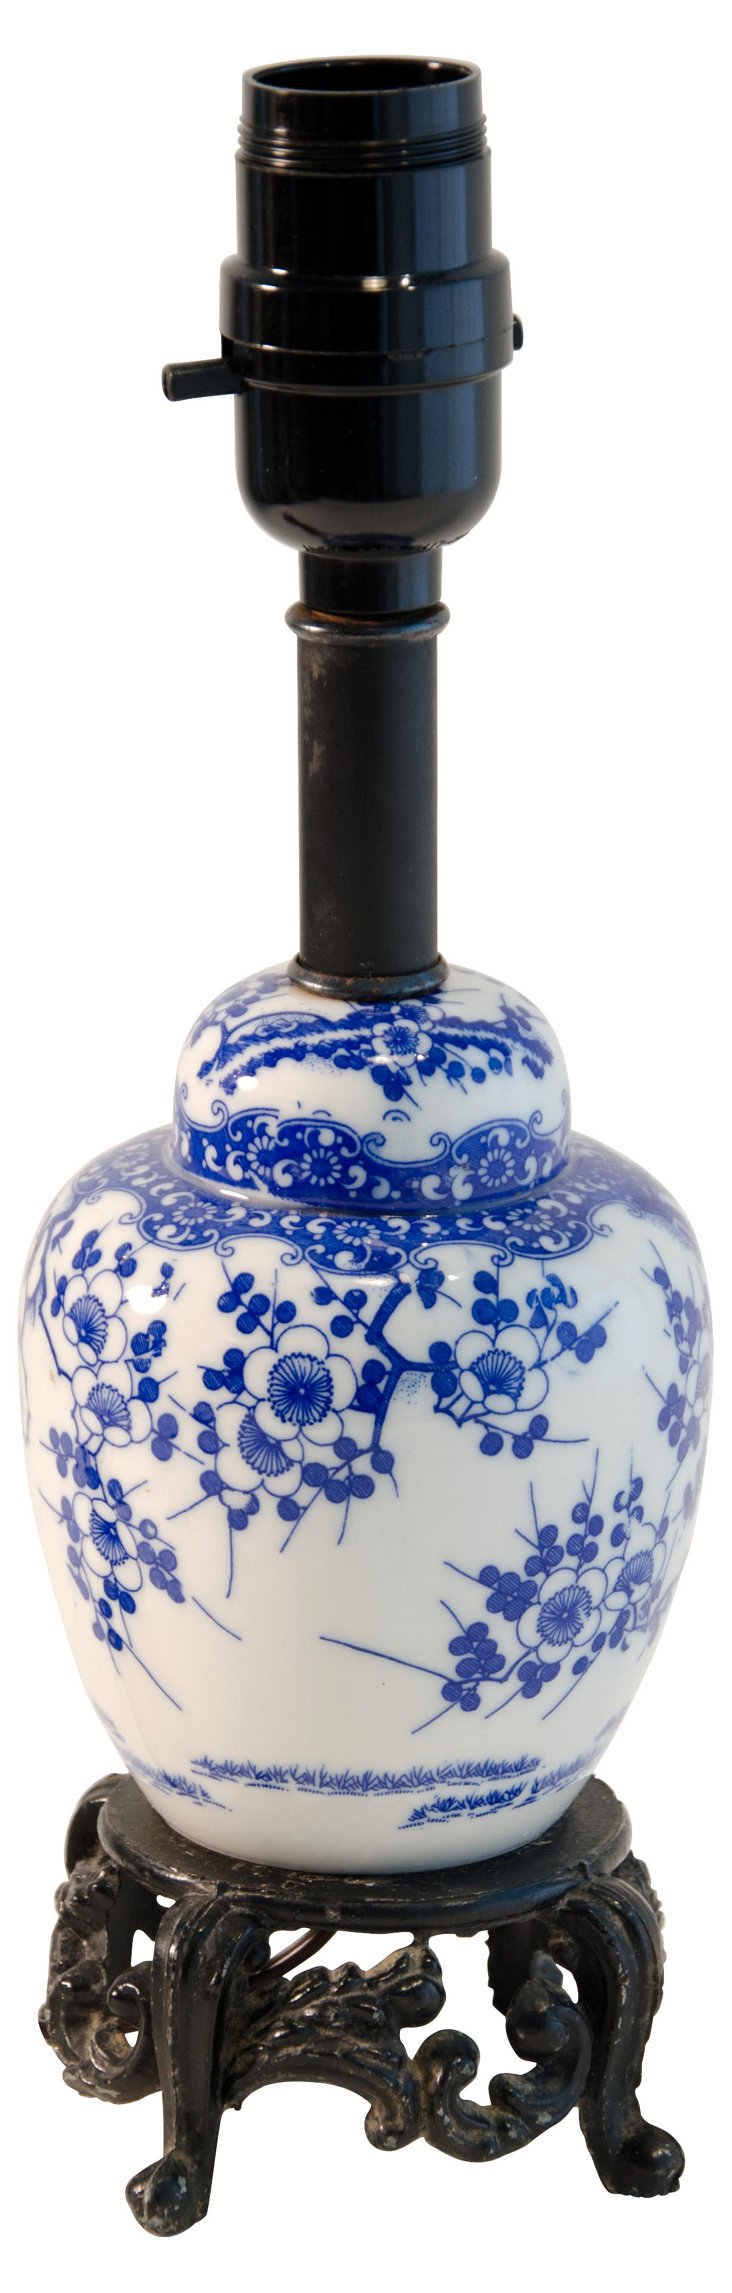 Blue & White Porcelain Lamp